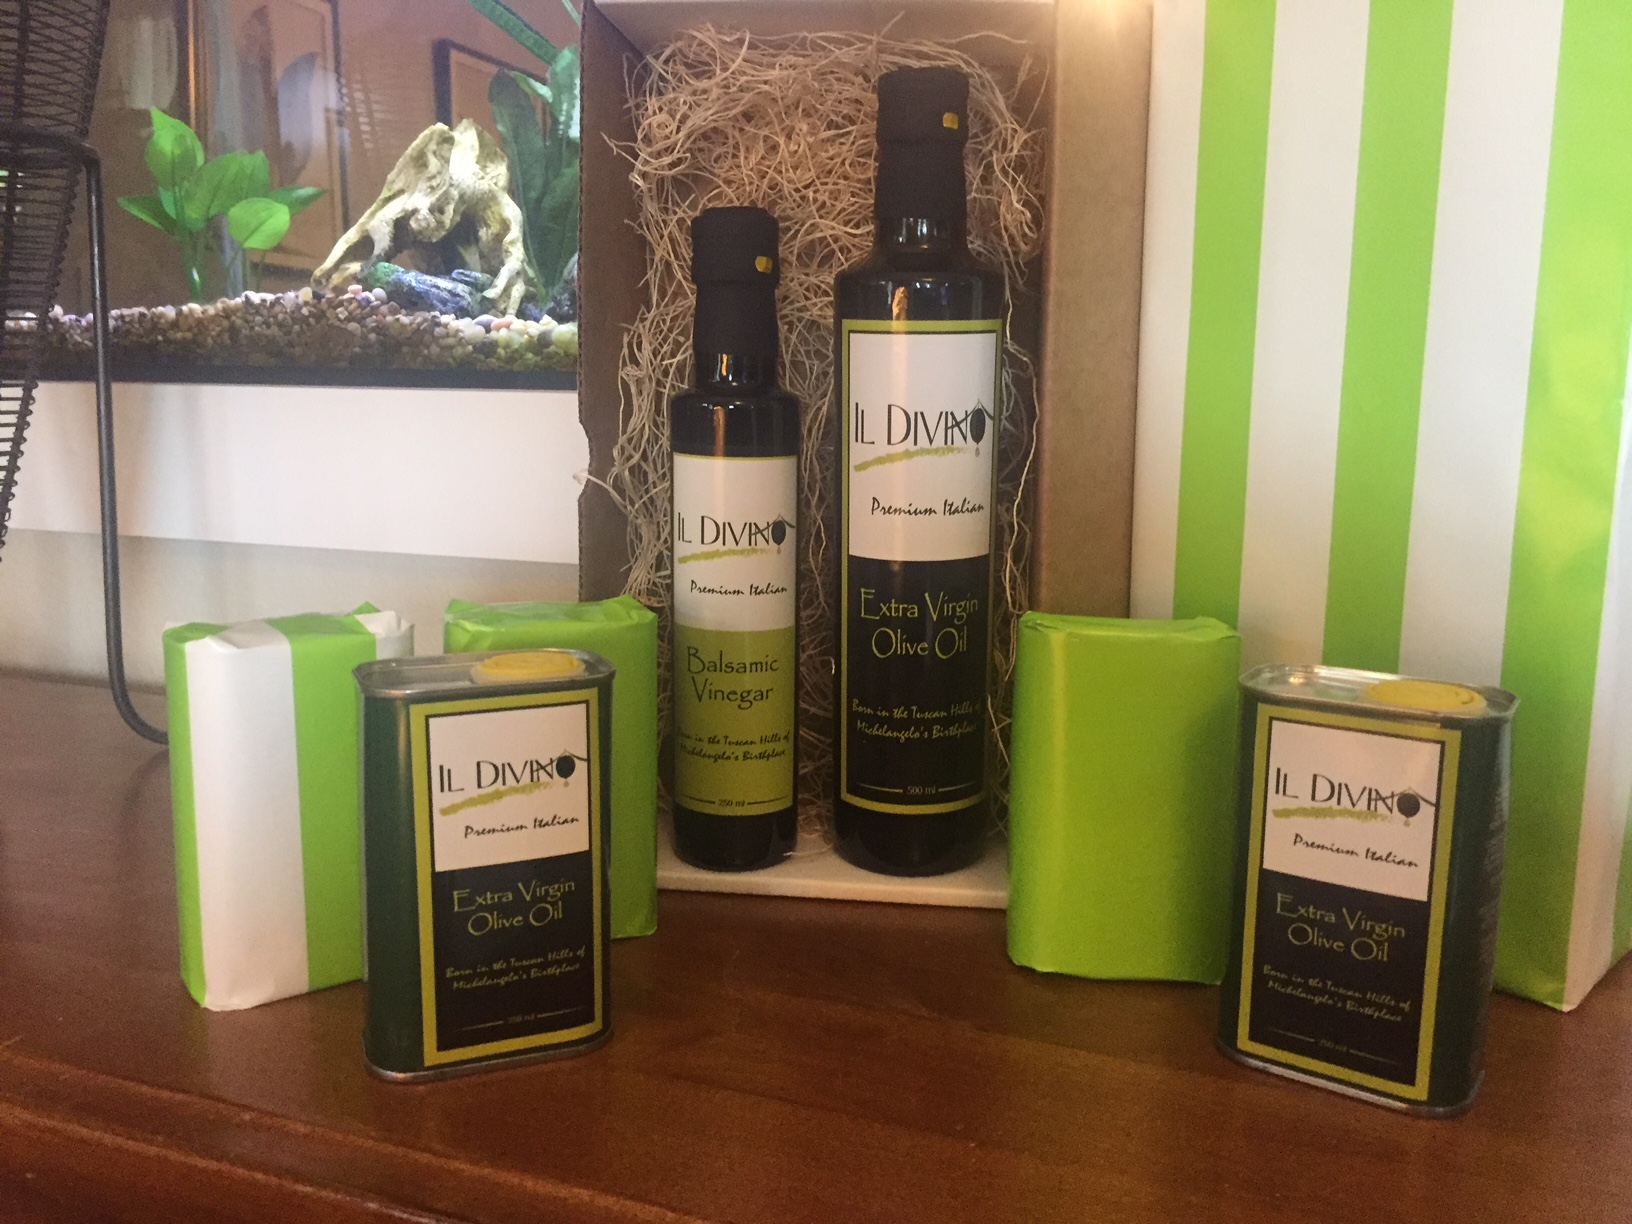 IL DIVINO Extra Virgin Olive Oil